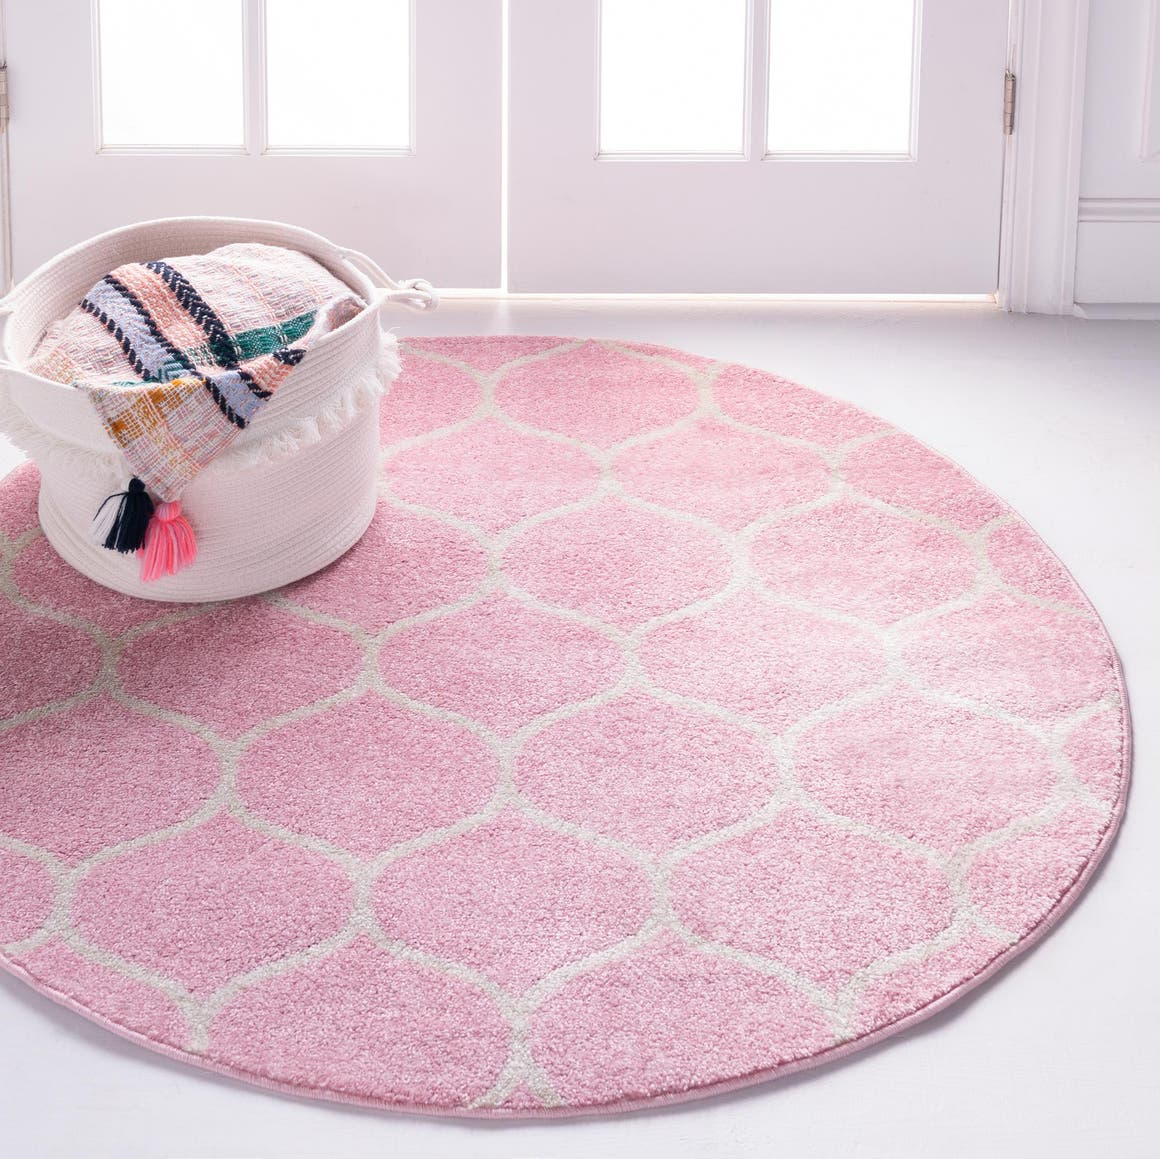 7' x 7' Trellis Frieze Round Rug main image